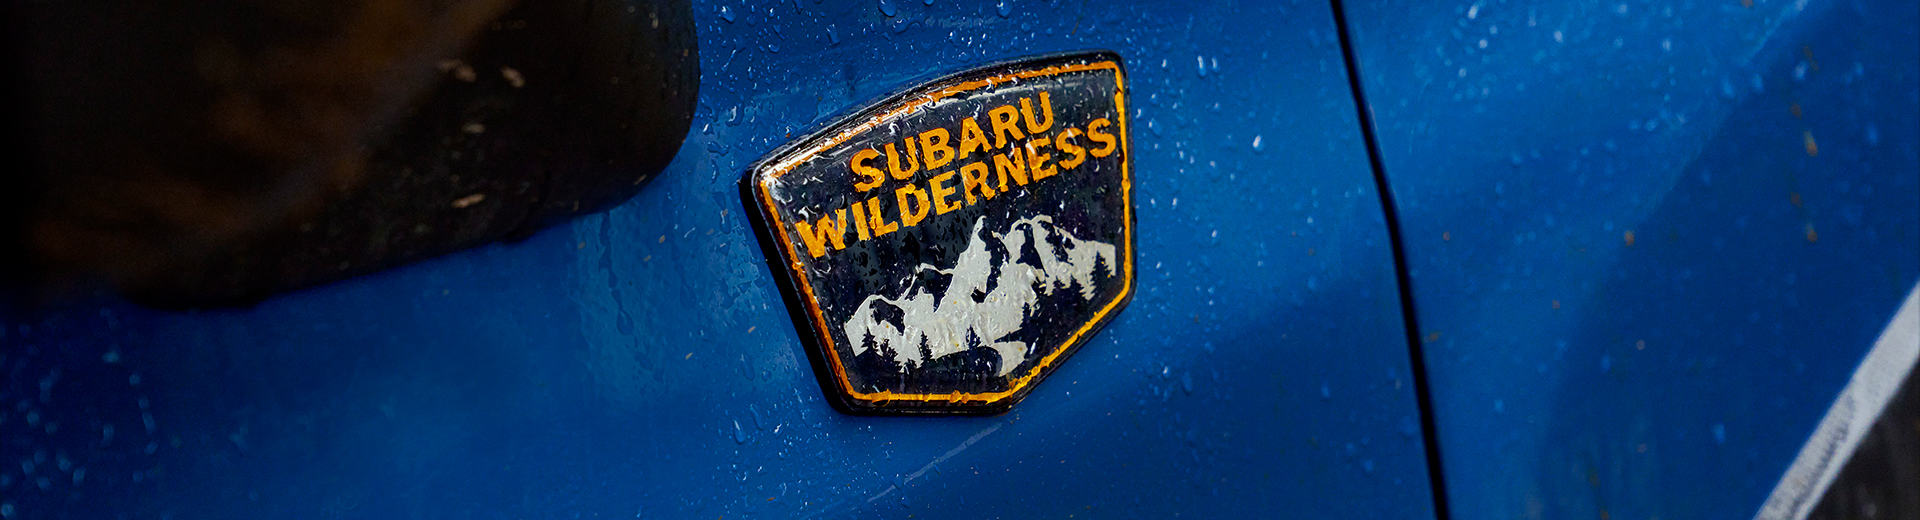 A NEW MEMBER OF THE SUBARU WILDERNESS FAMILY IS ON THE WAY